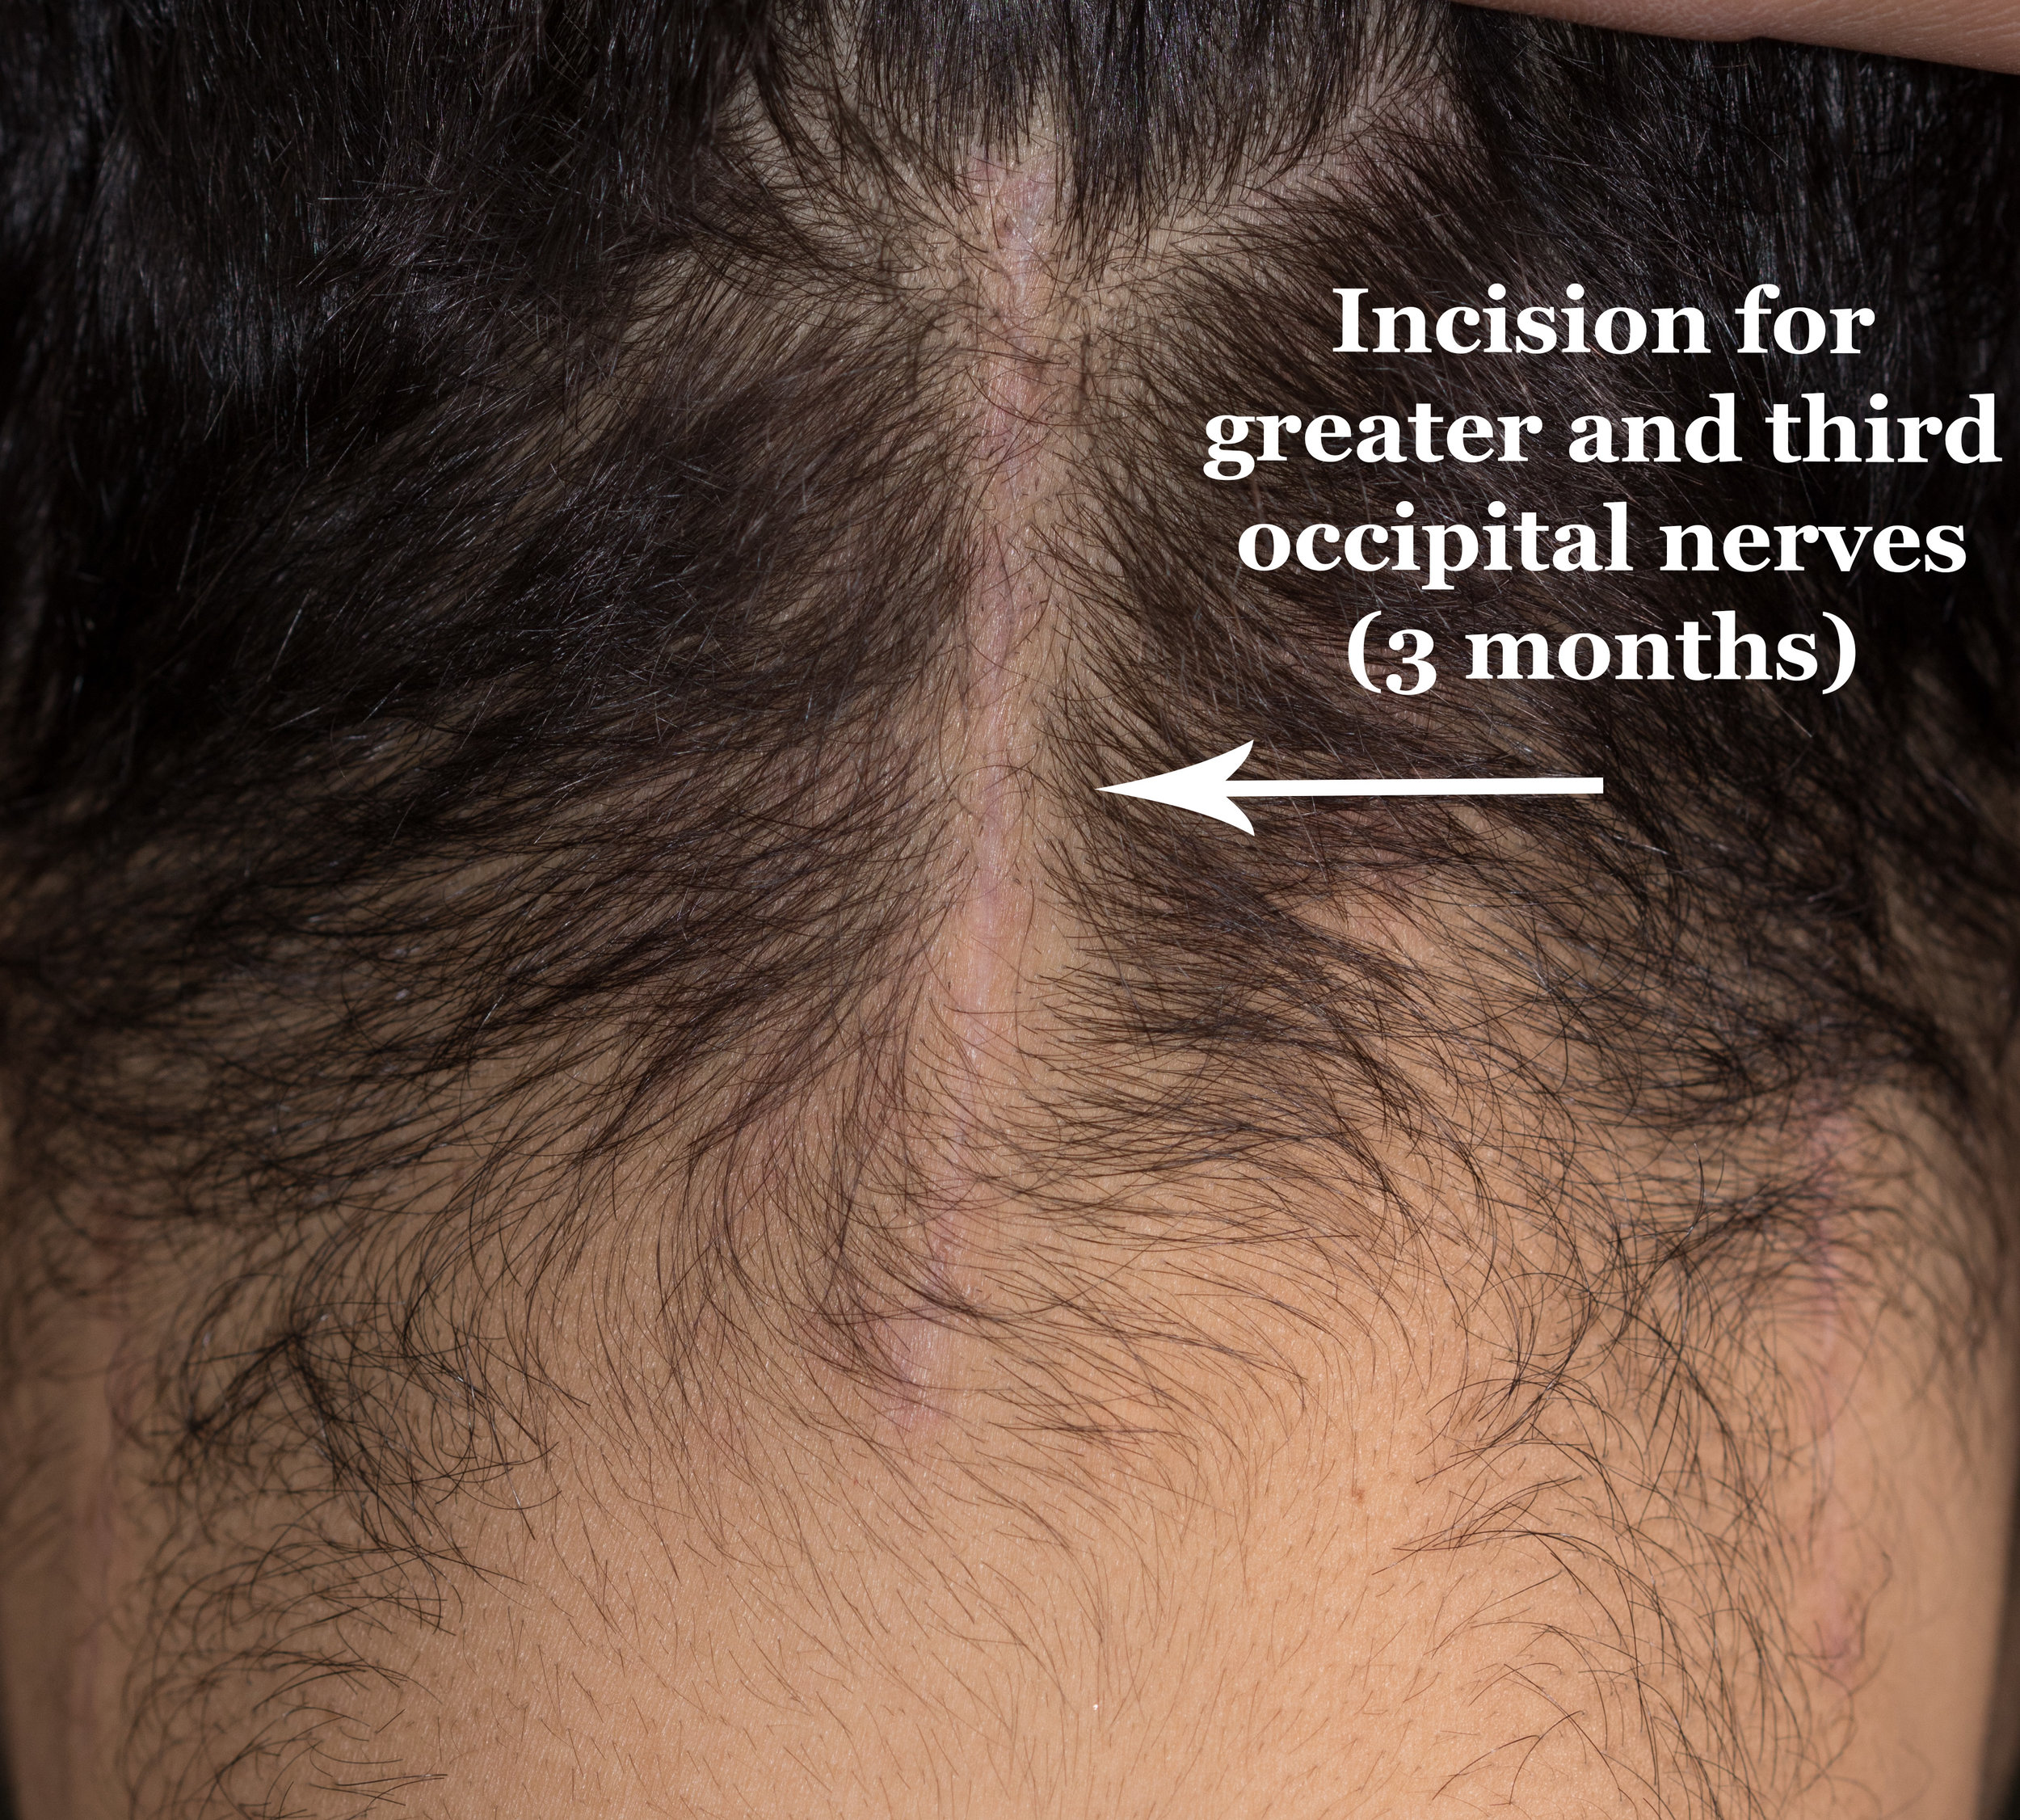 Center Incision 3 months zoomed.jpg